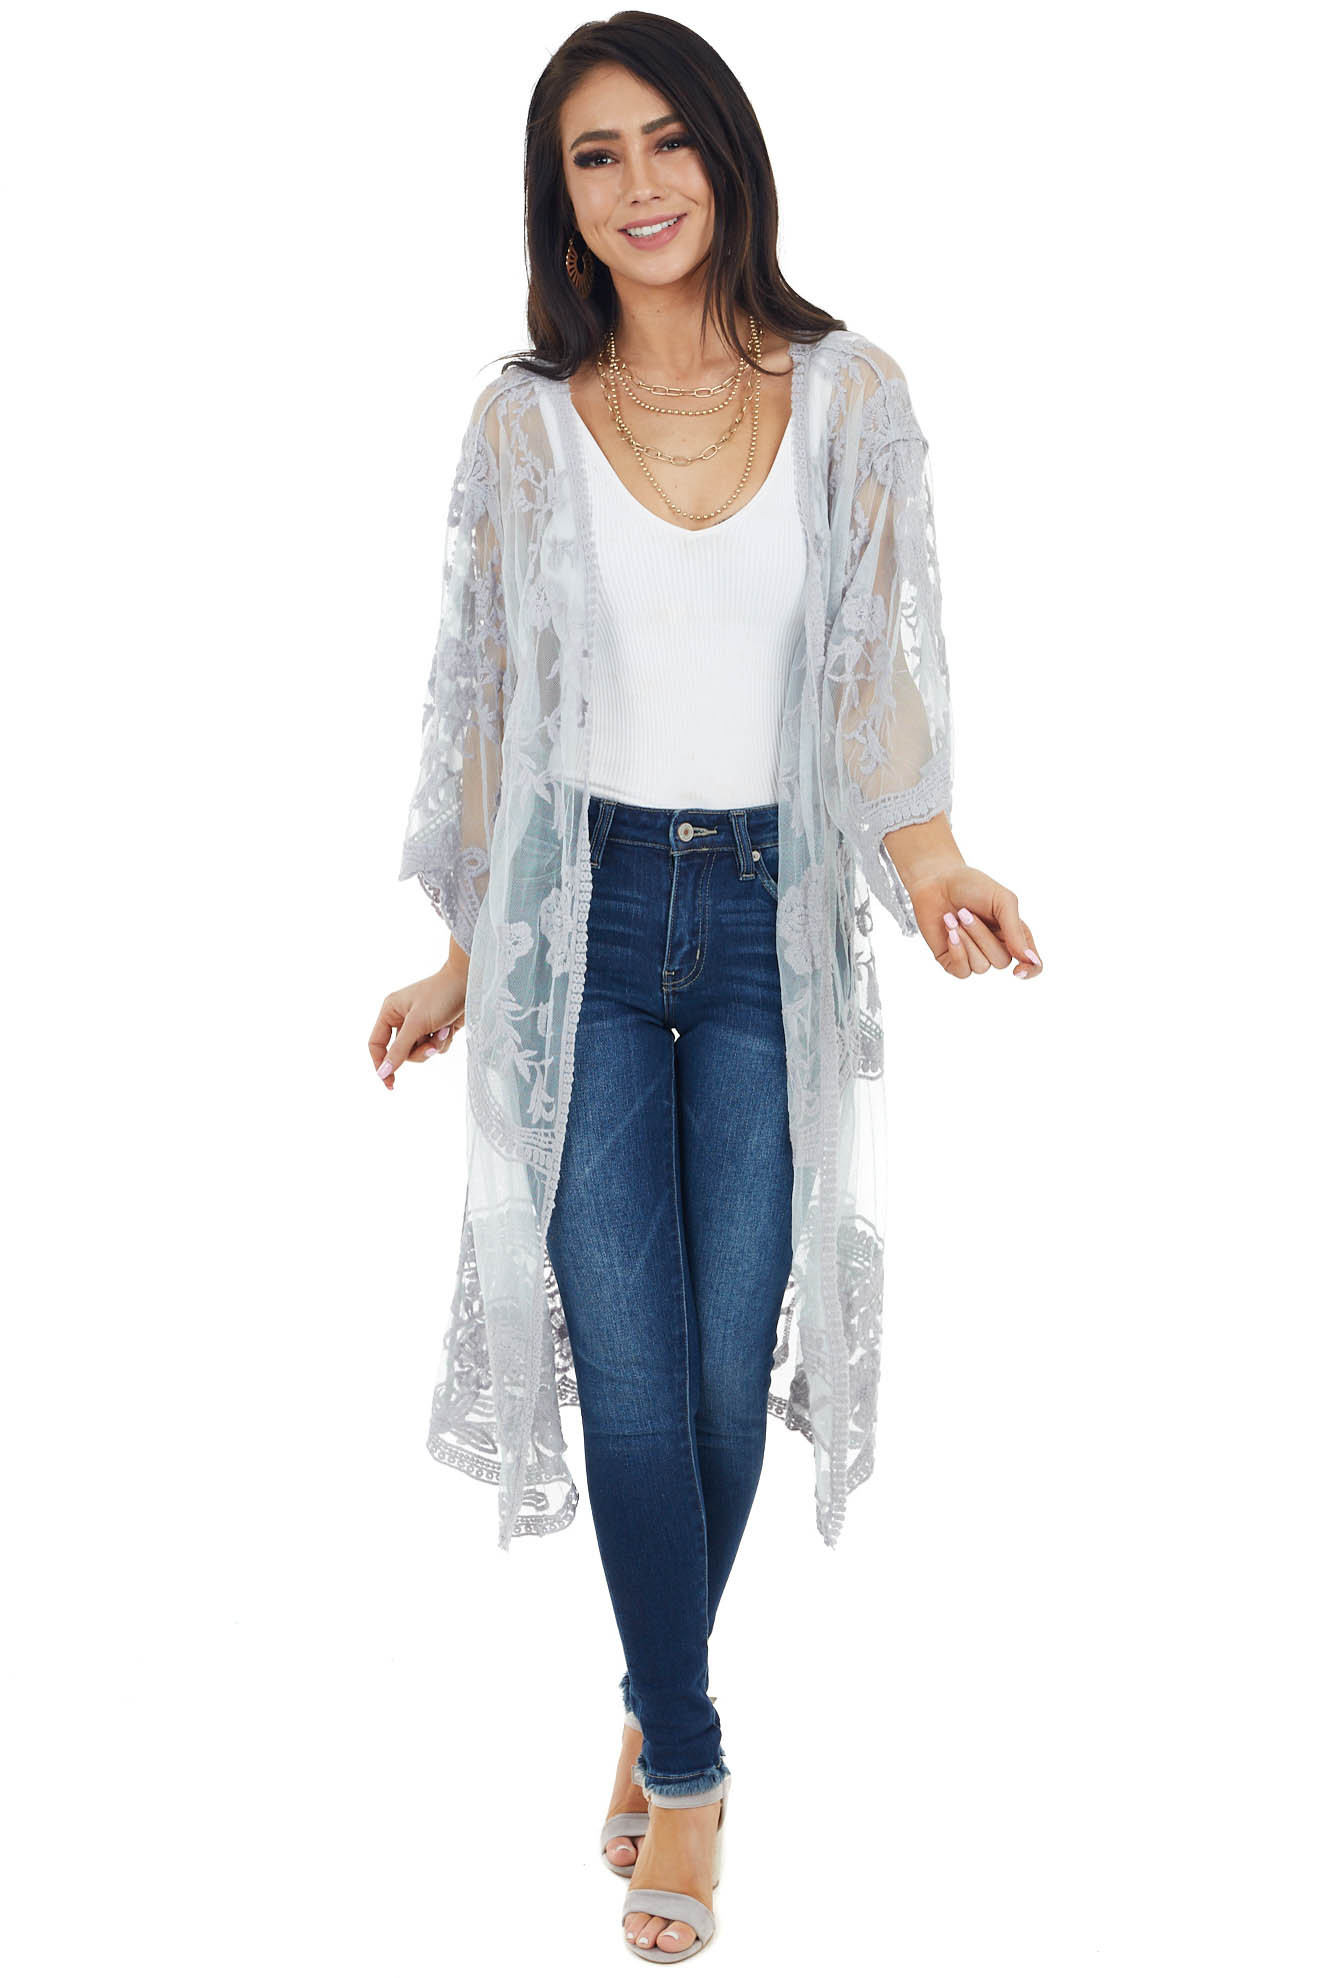 Dove Grey Crochet Knit Floral Kimono with Short Sleeves